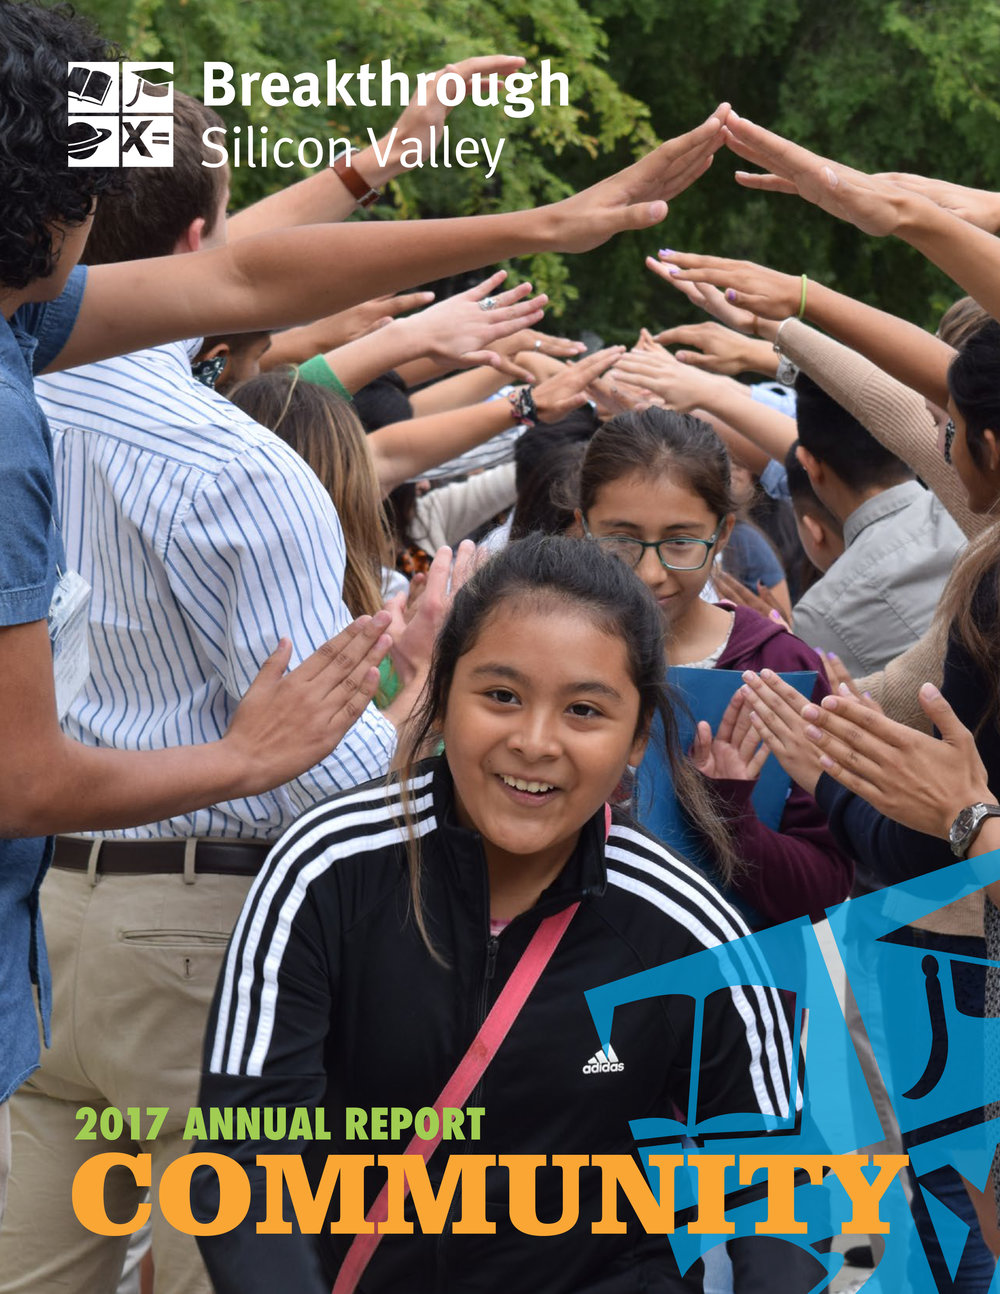 2017 Annual Report_Cover Photo.jpg